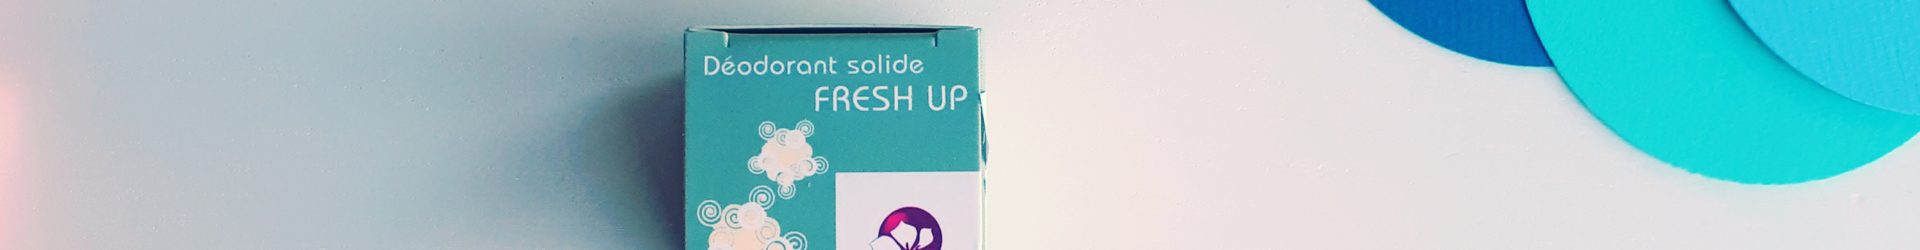 Pachamamaï – Déodorant solide Fresh Up (25g)